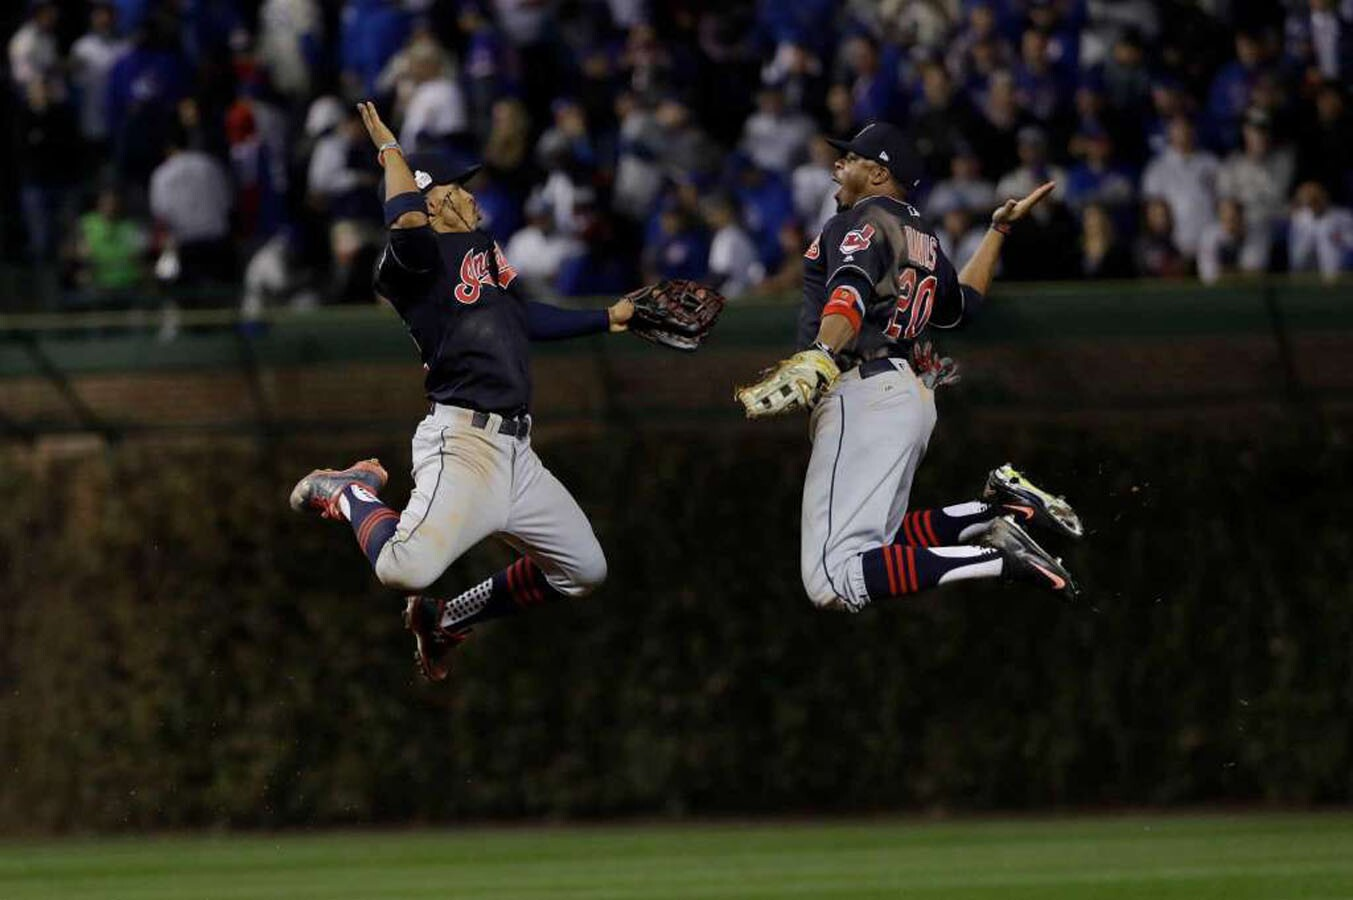 Cleveland Indians' Francisco Lindor and Rajai Davis celebrate after Game 3 of the Major League Baseball World Series against the Chicago Cubs Friday, Oct. 28, 2016, in Chicago. The Indians won 1-0 to take a 2-1 lead in the series.